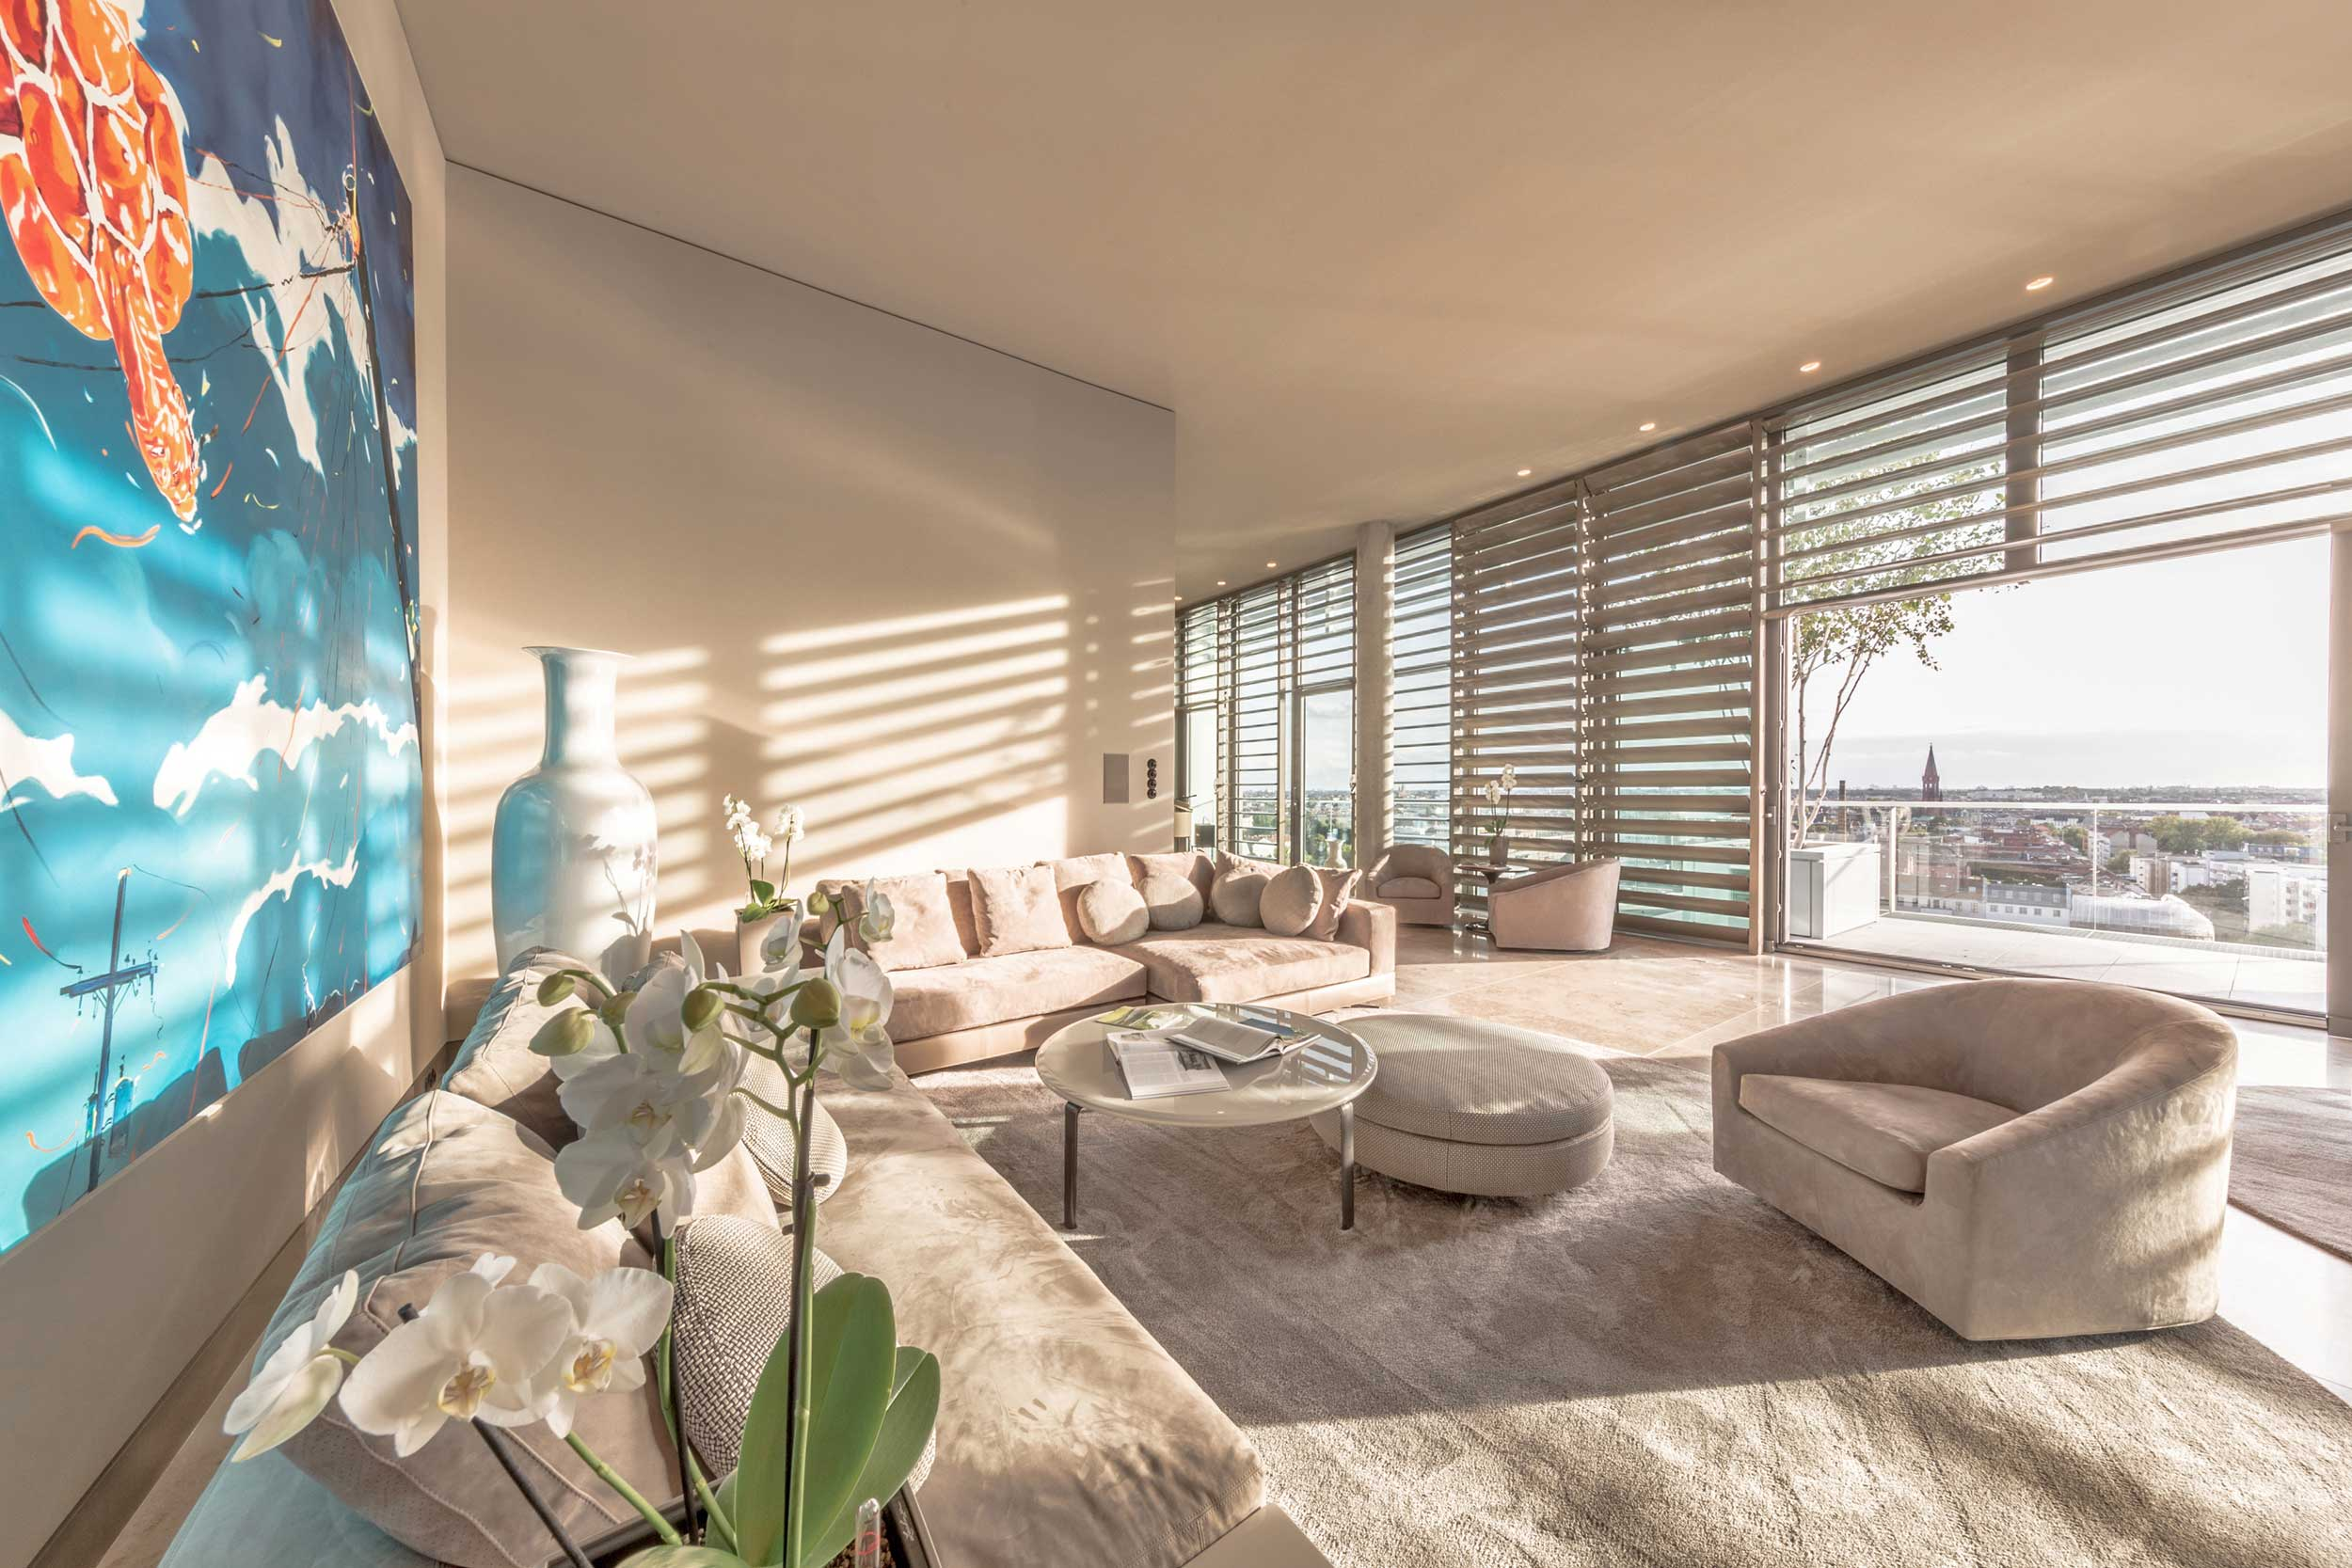 Penthouse Berlin in berlin surrounded by the most exciting spots